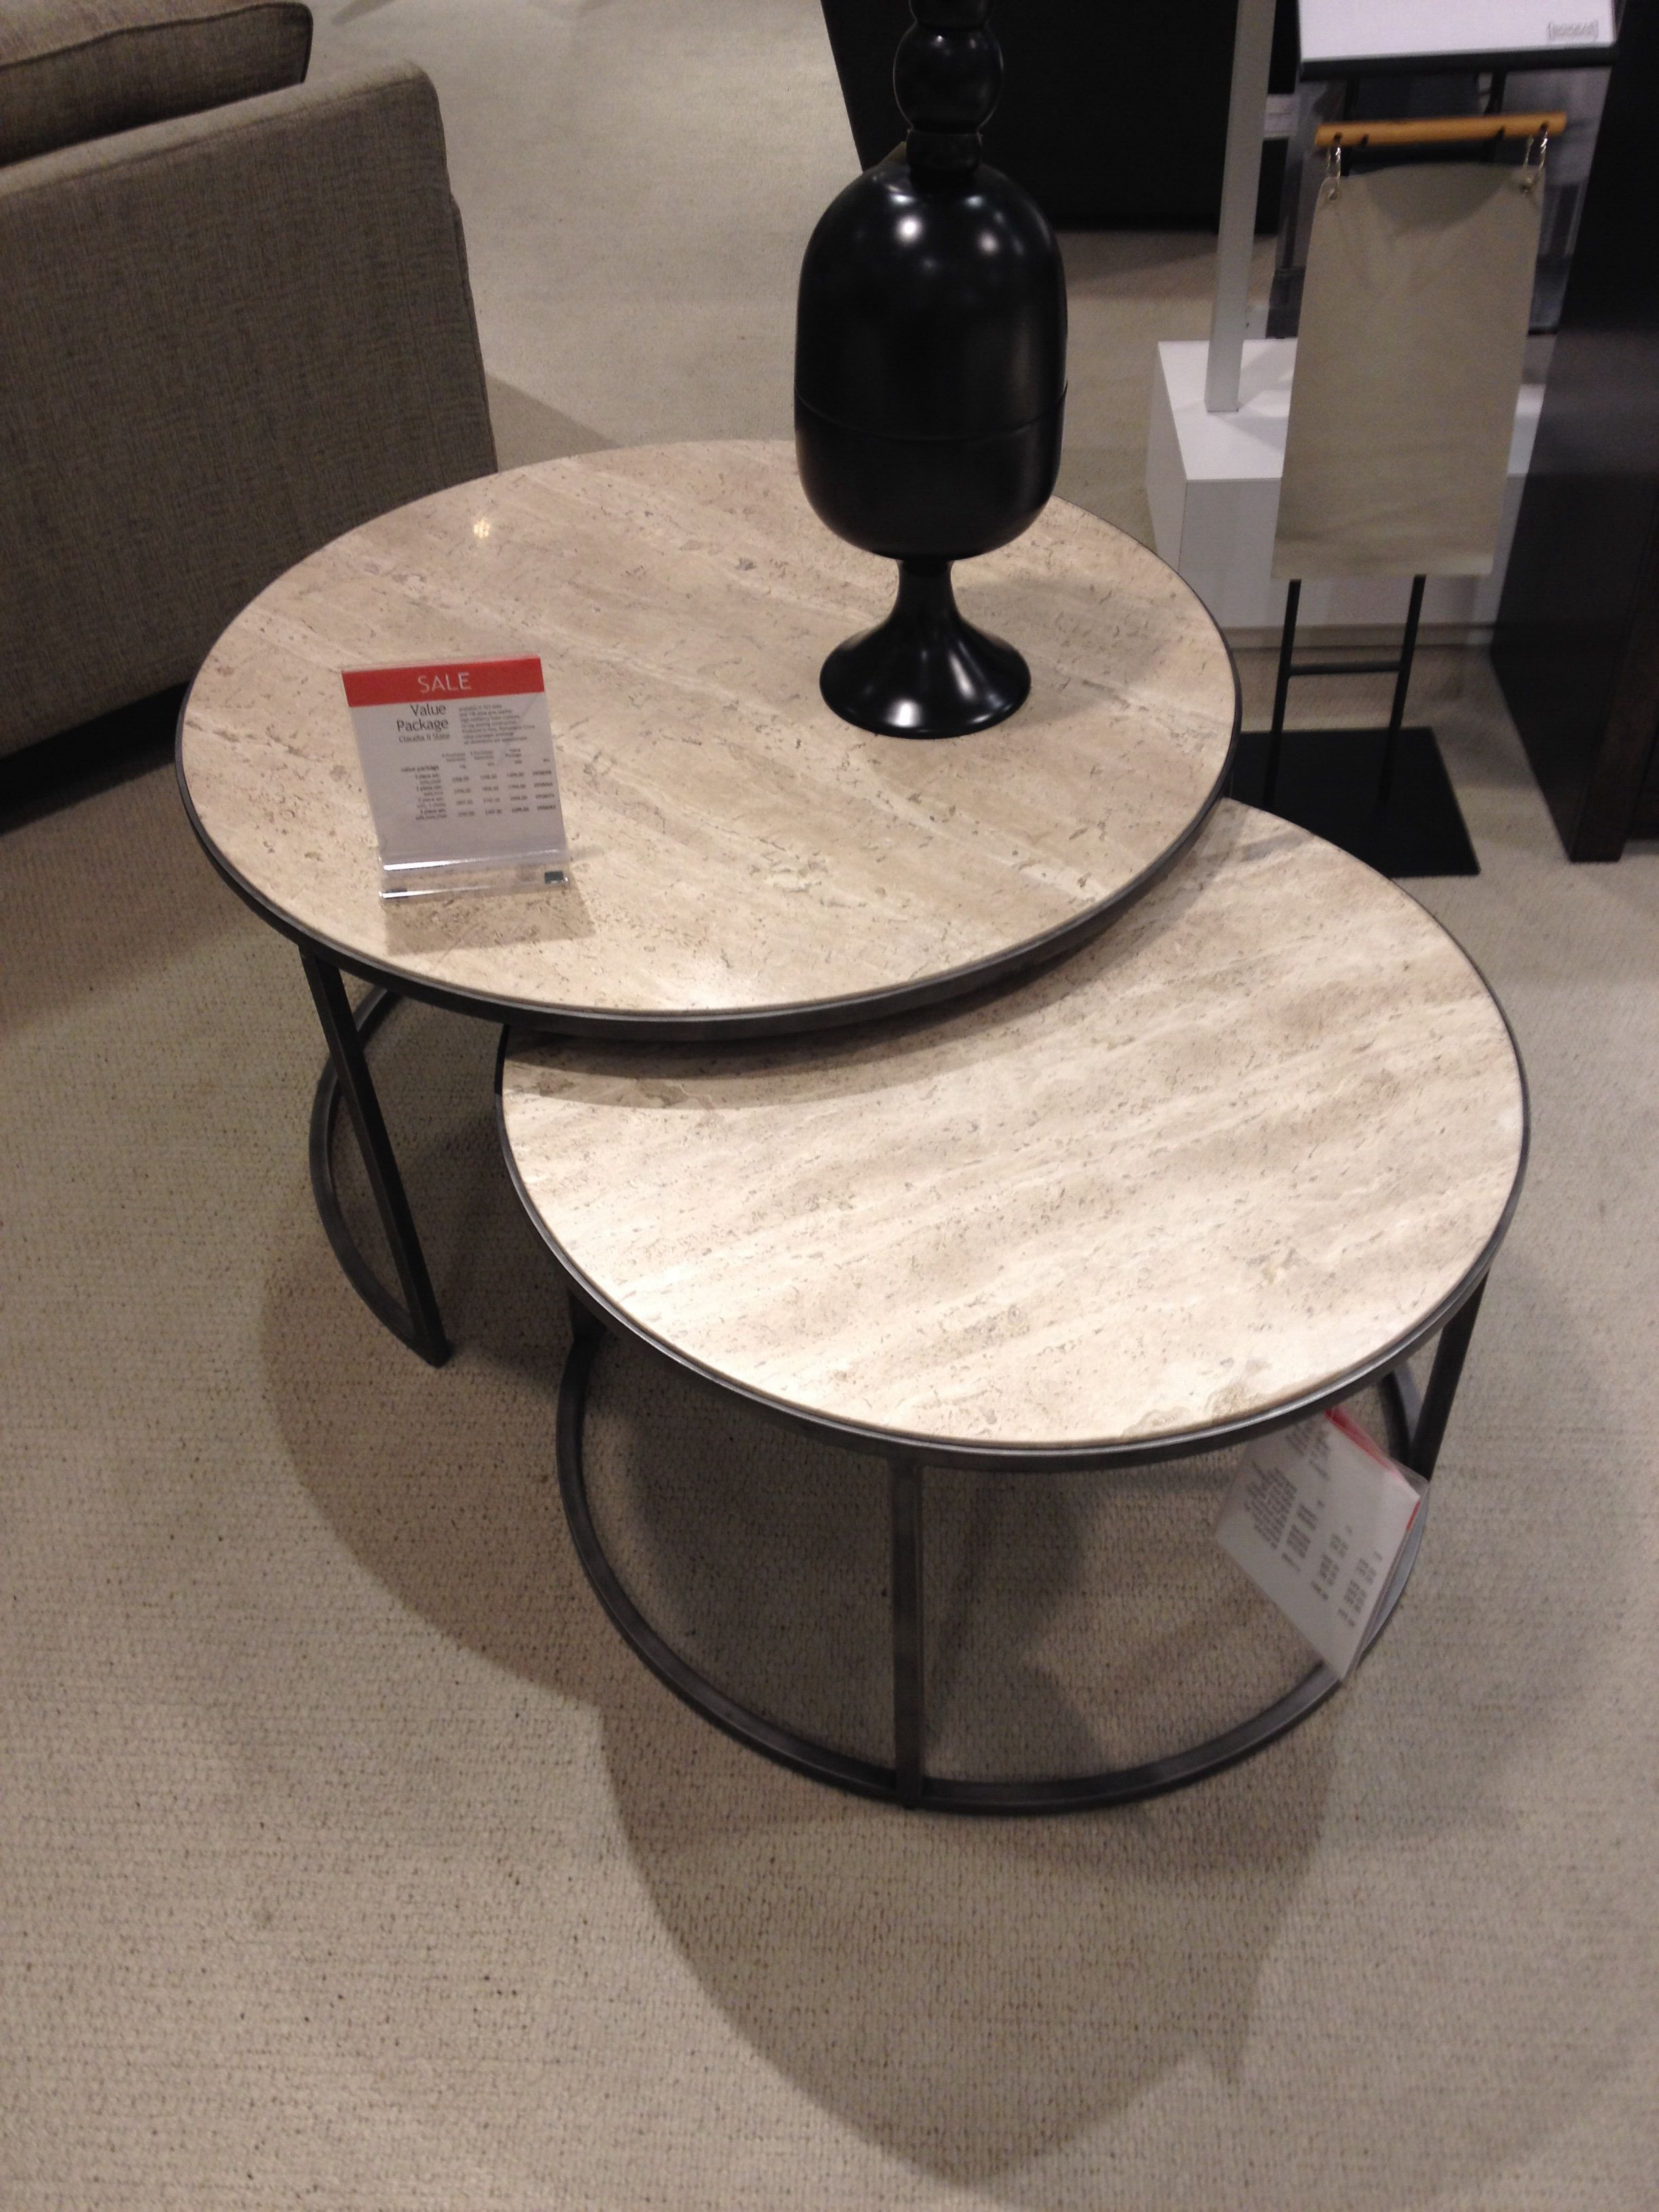 macy s furniture sofa tables microfiber sleeper sofas macy's monterey round nesting table $500 | living room ...